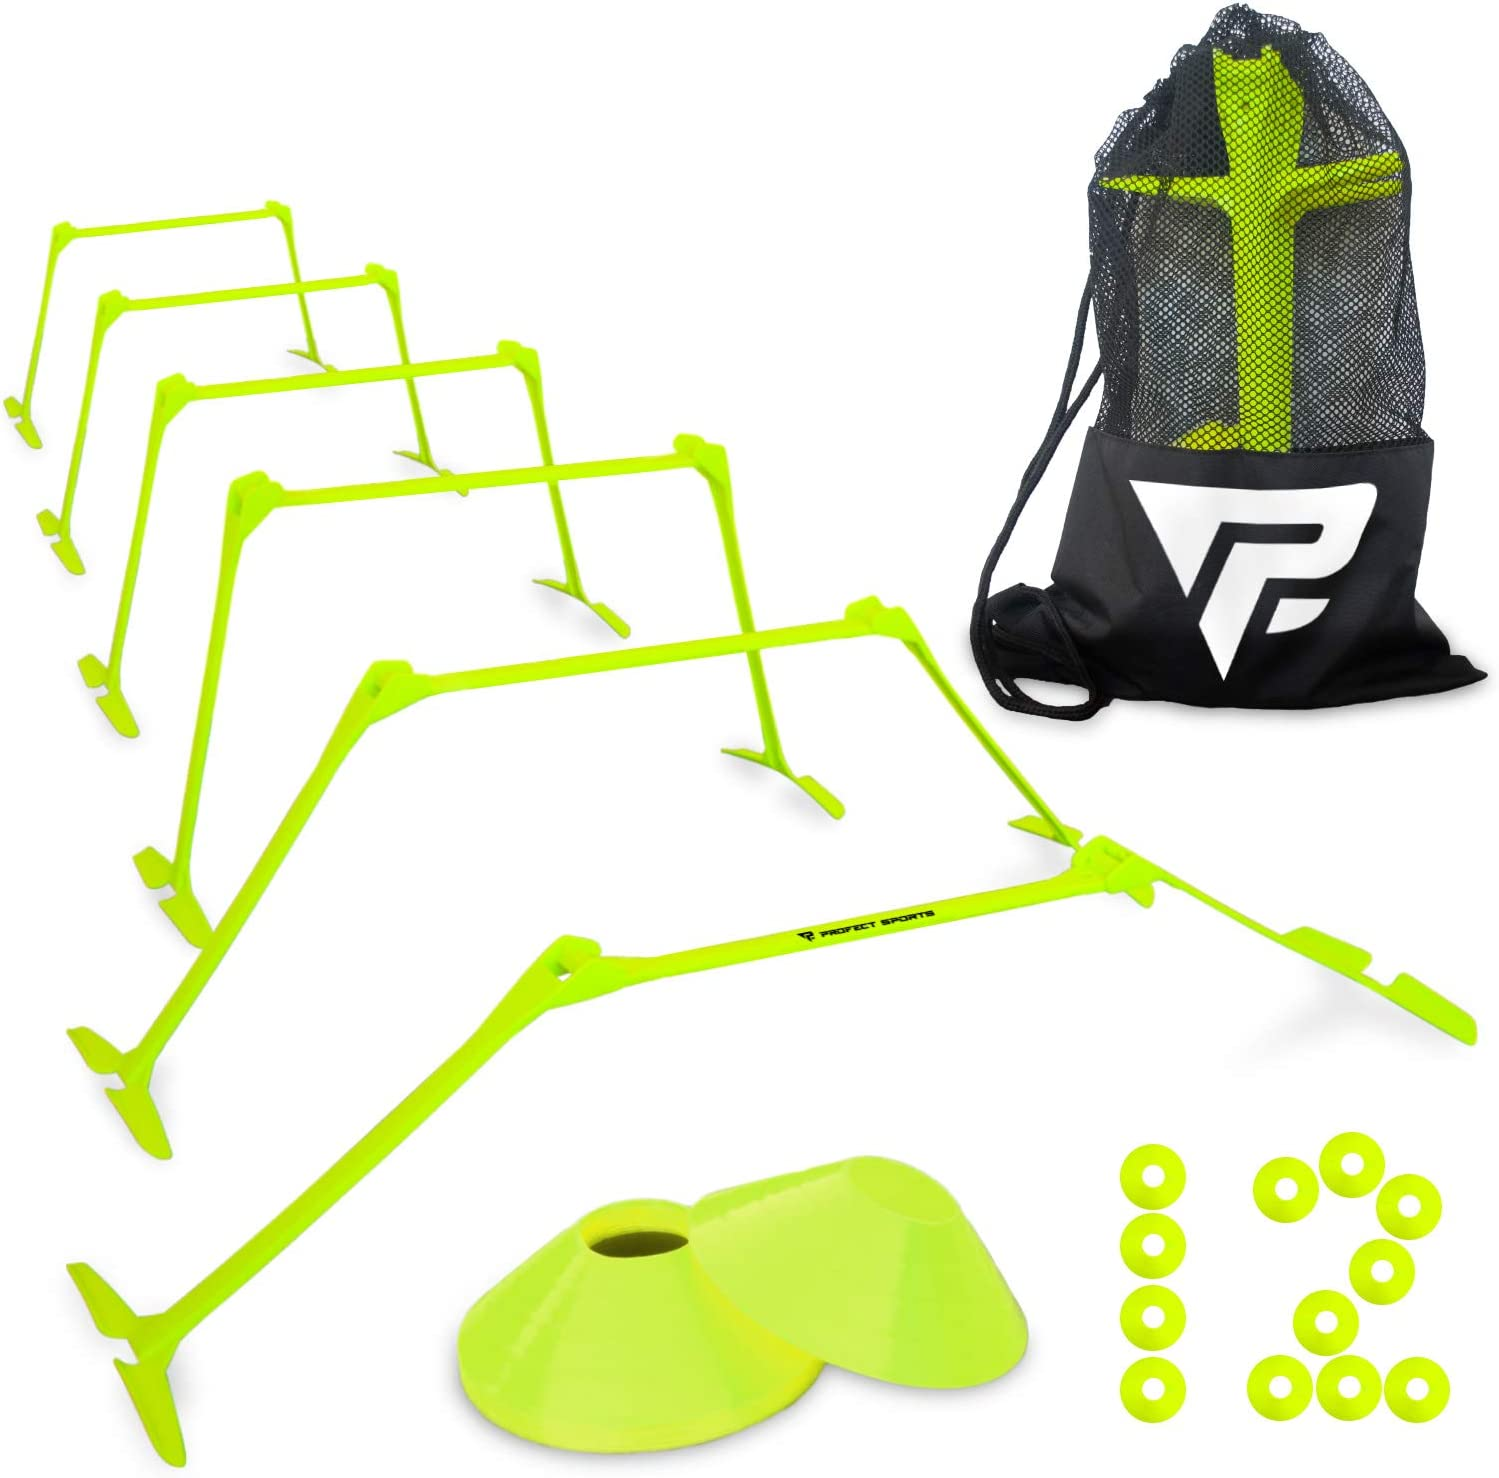 """Pro Adjustable Hurdles and Cone Set – 6 Agility Hurdles (6"""", 9"""" or 12"""" Height) with 12 Disc Cones for Soccer, Sports, Plyometric Speed Training – Includes Carry Bag & 2 Agility Drills eBooks (Yellow) : Sports & Outdoors"""